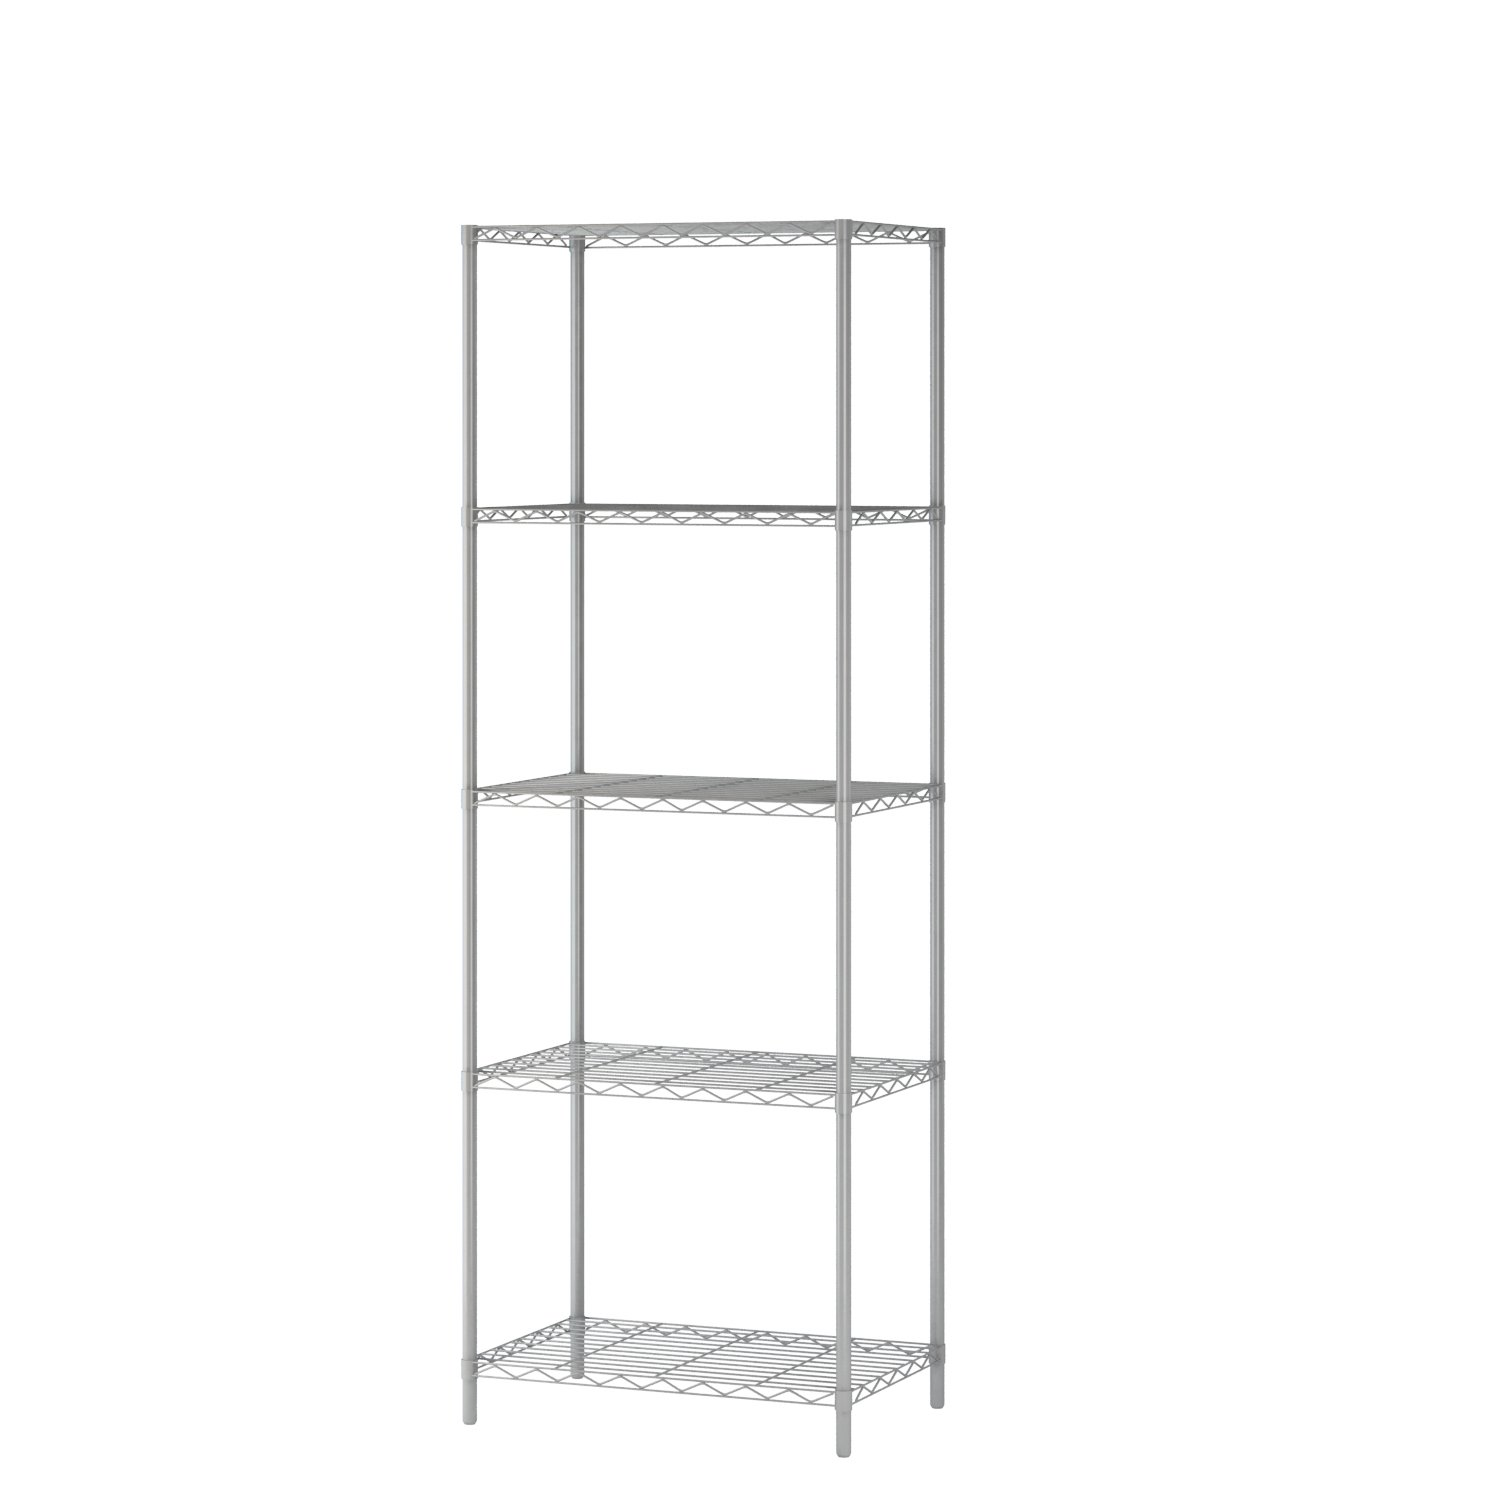 MULSH 5-Tier Wire Shelving Metal Wire Shelf Storage Rack Durable Organizer Unit Perfect for Kitchen Garage Pantry Organization in Grey,21'Wx14 Dx62 H